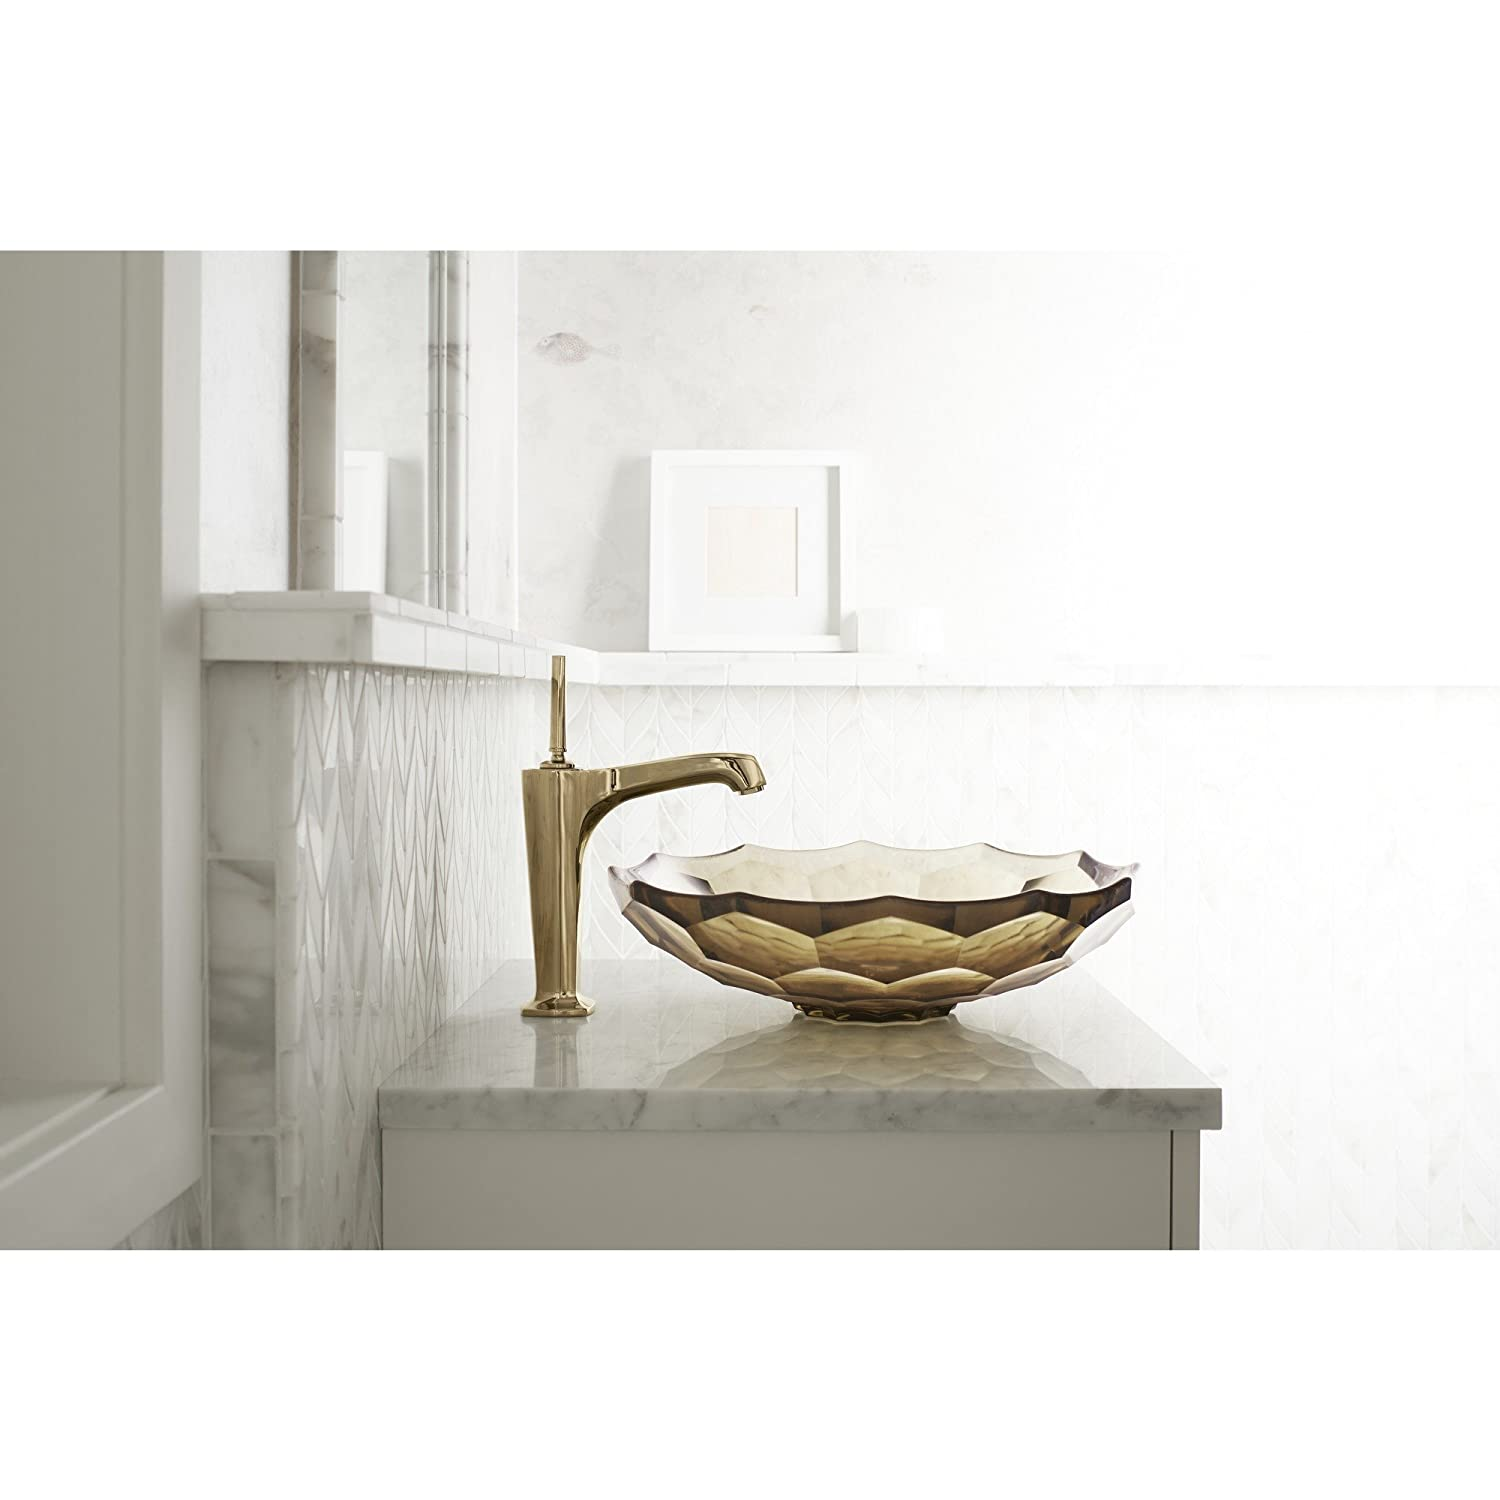 KOHLER K-2373-TG7 Briolette Vessel Faceted Glass Bathroom Sink, Translucent Sandalwood Glass